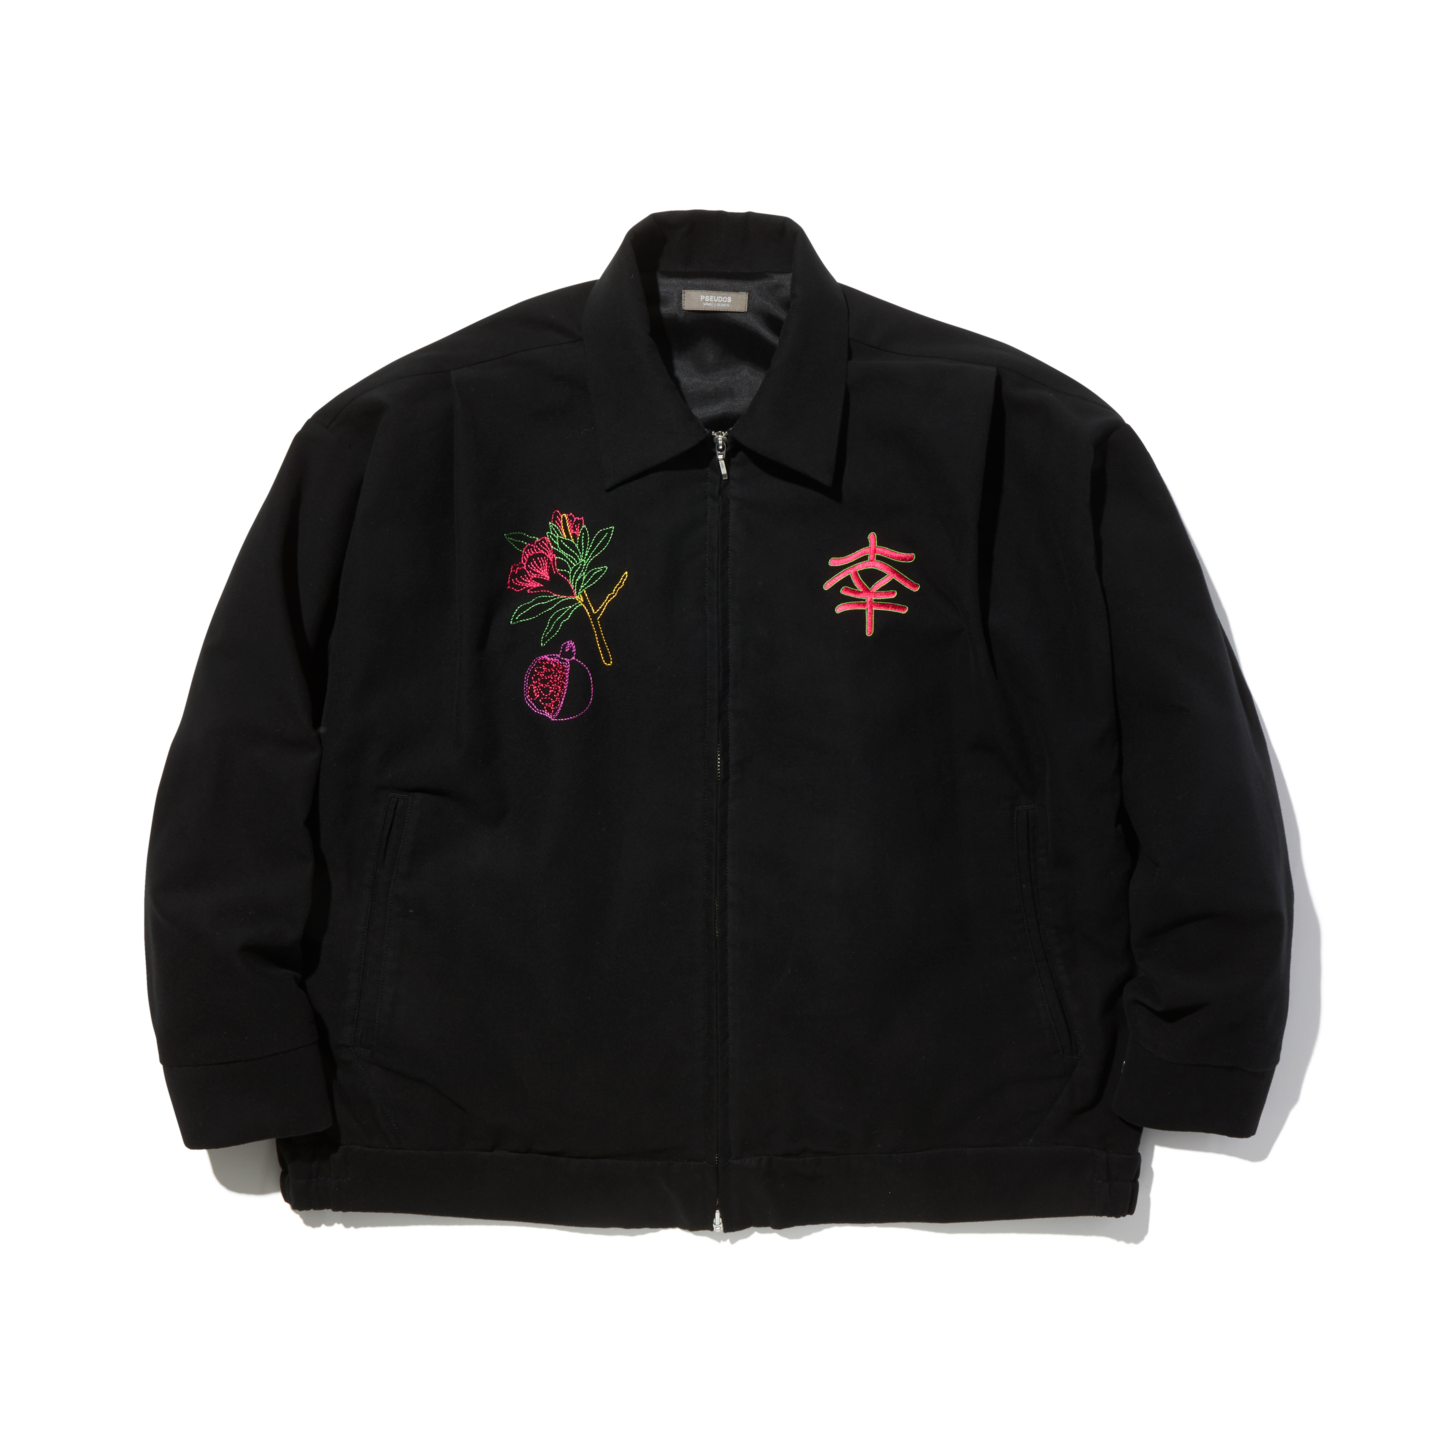 EMBROIDERED SOUVENIR JACKET